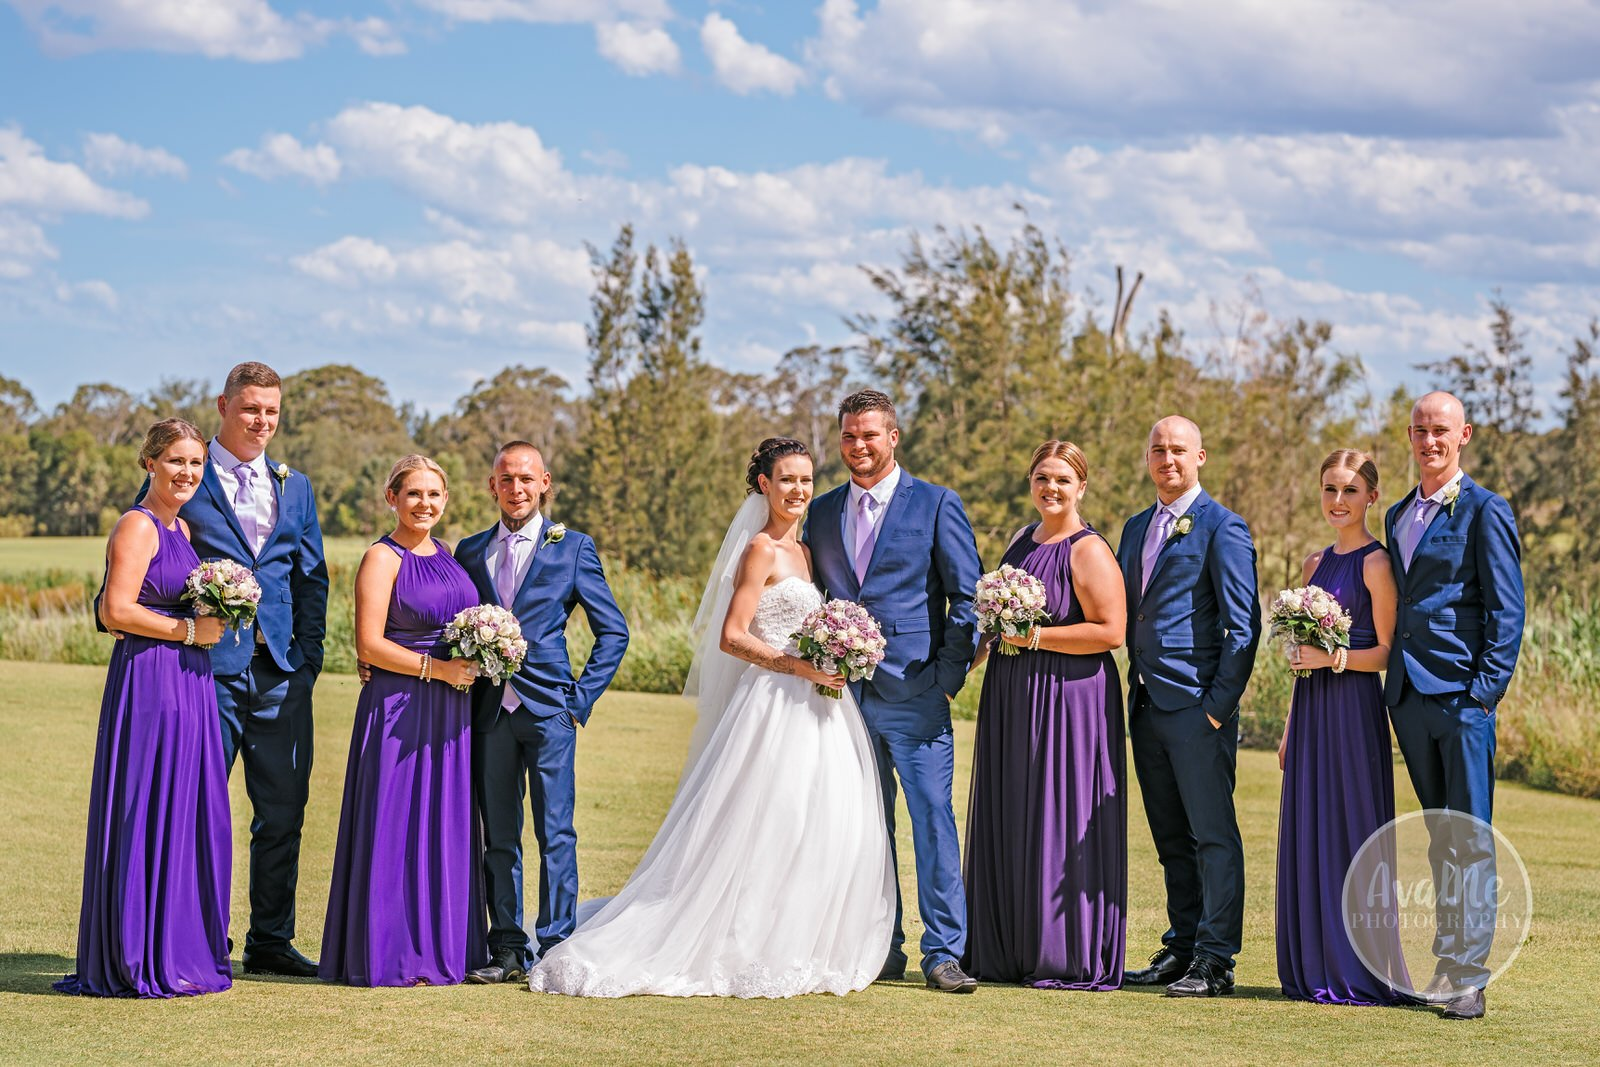 nat-josh-stonecutters-golf-club-wedding-colebee-093